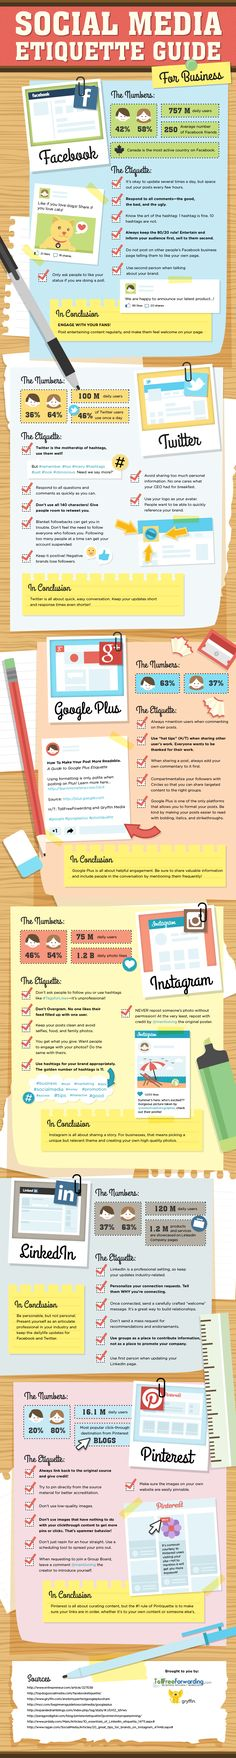 Social Media Etiquette For Business  | Social media